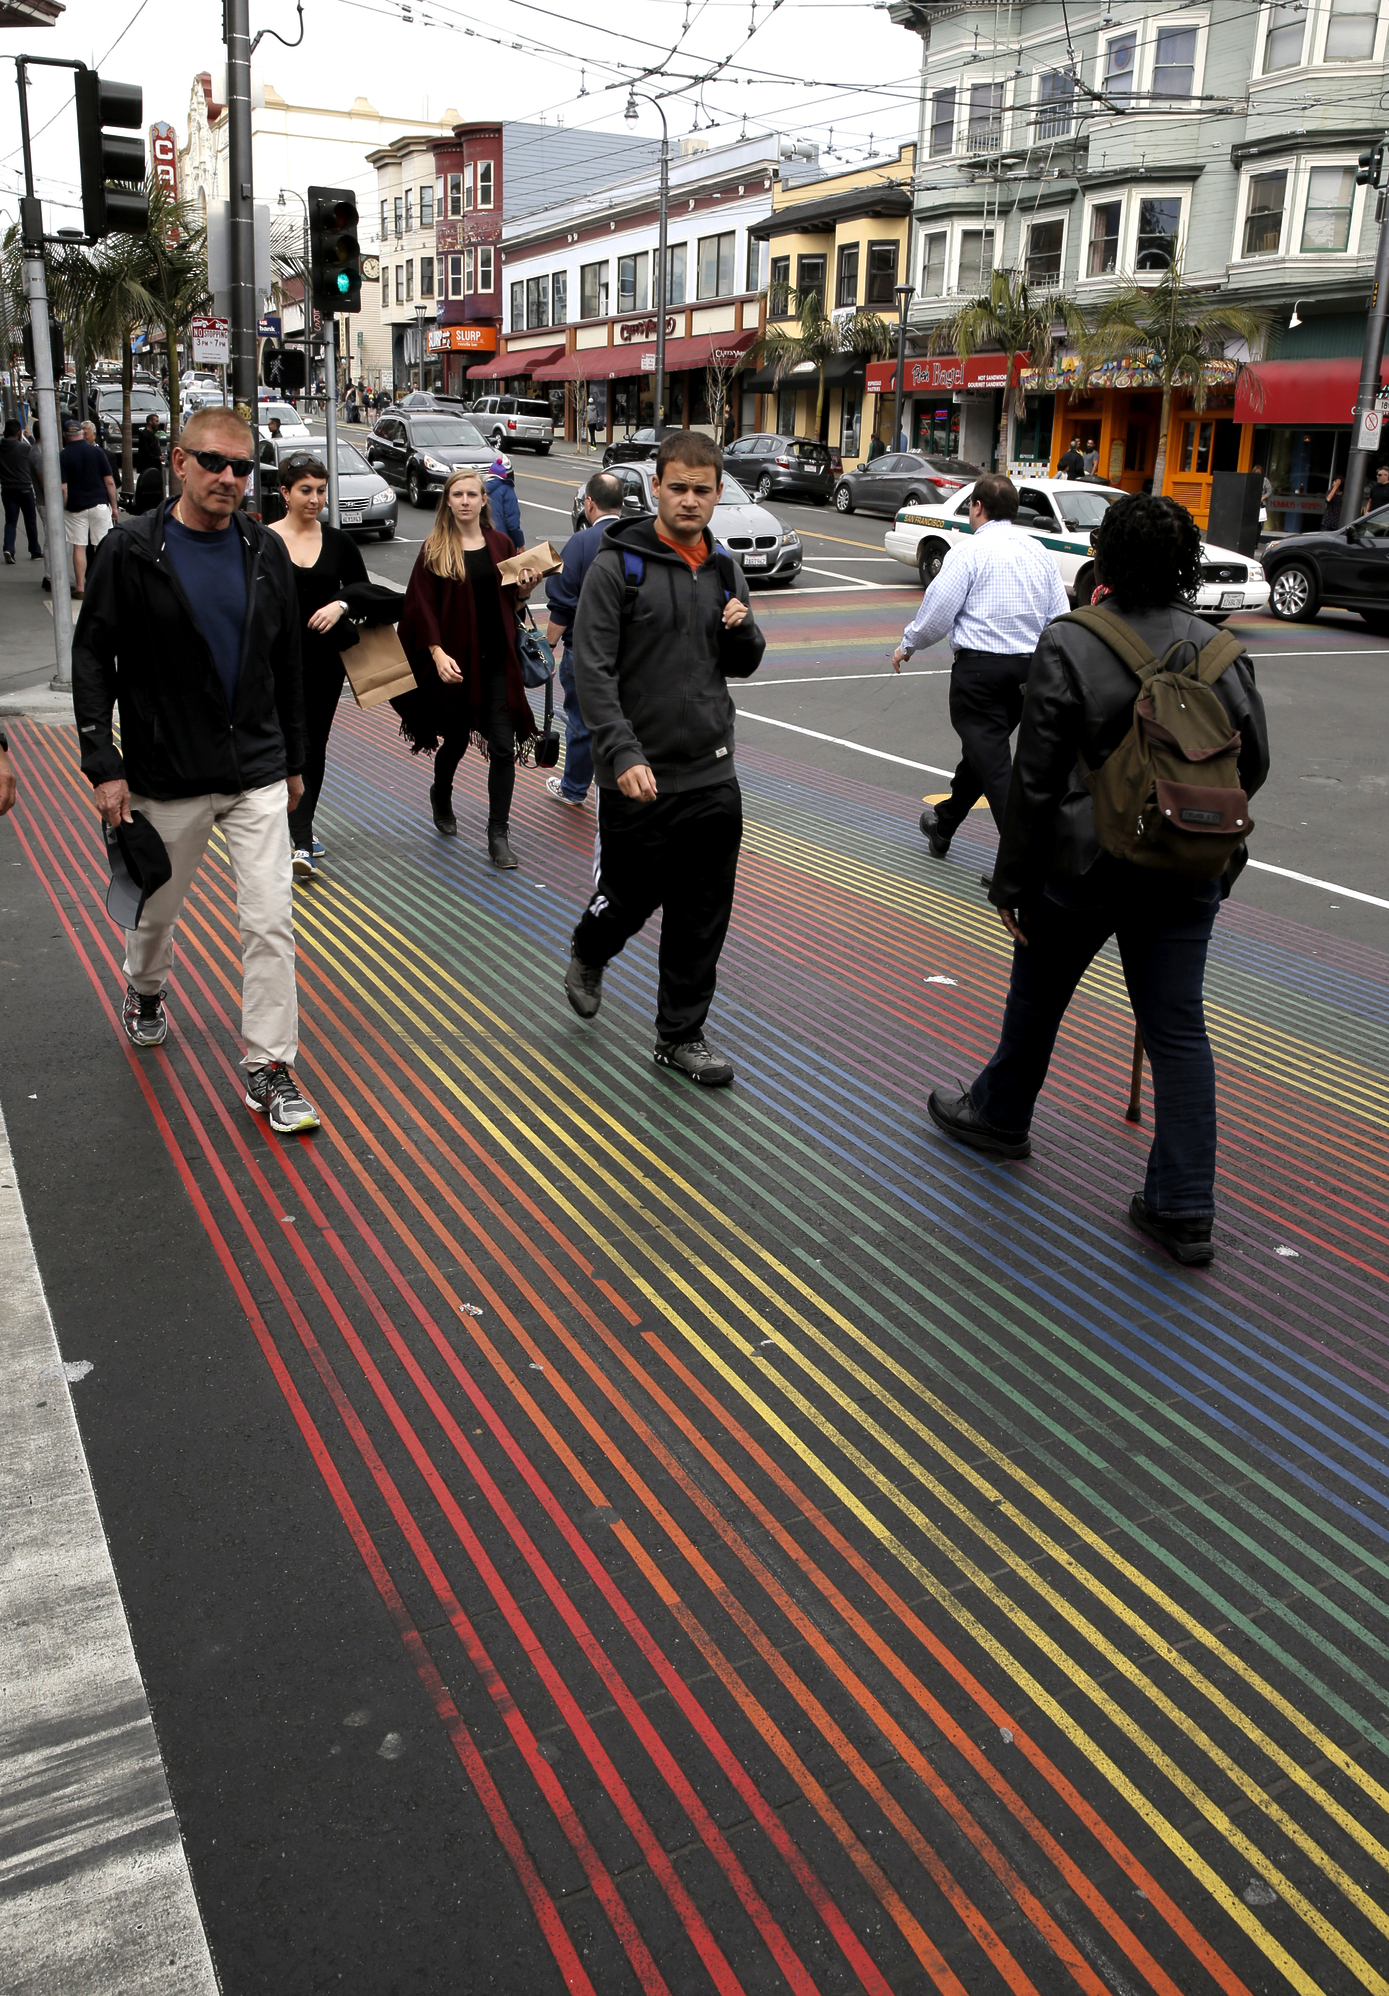 S.F. area's LGBT population tops survey; San Jose near bottom